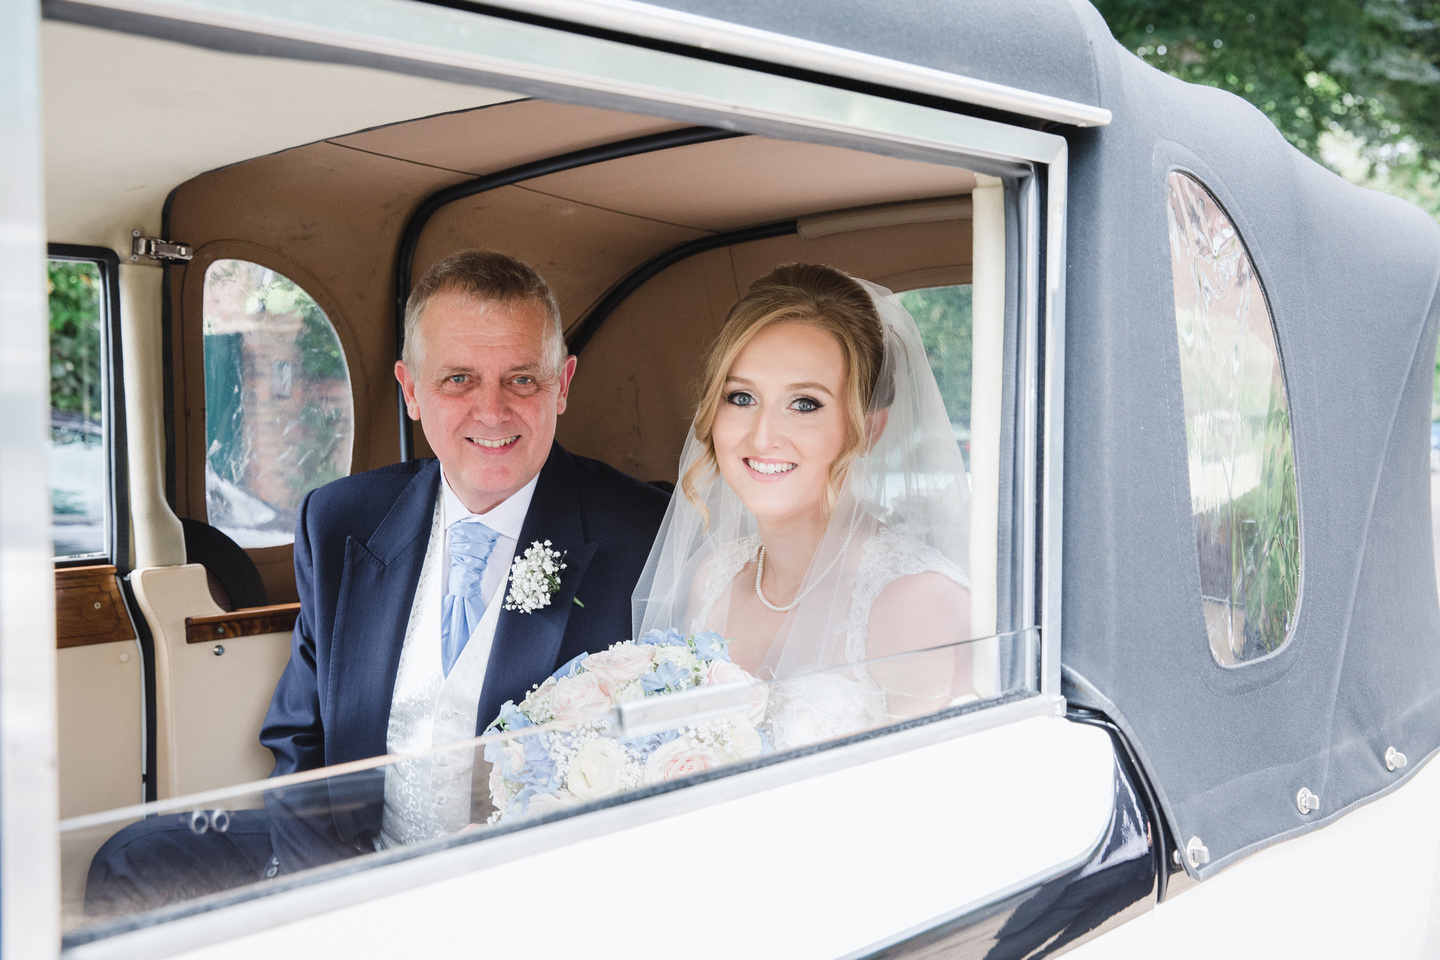 Father of the bride and bride in wedding car